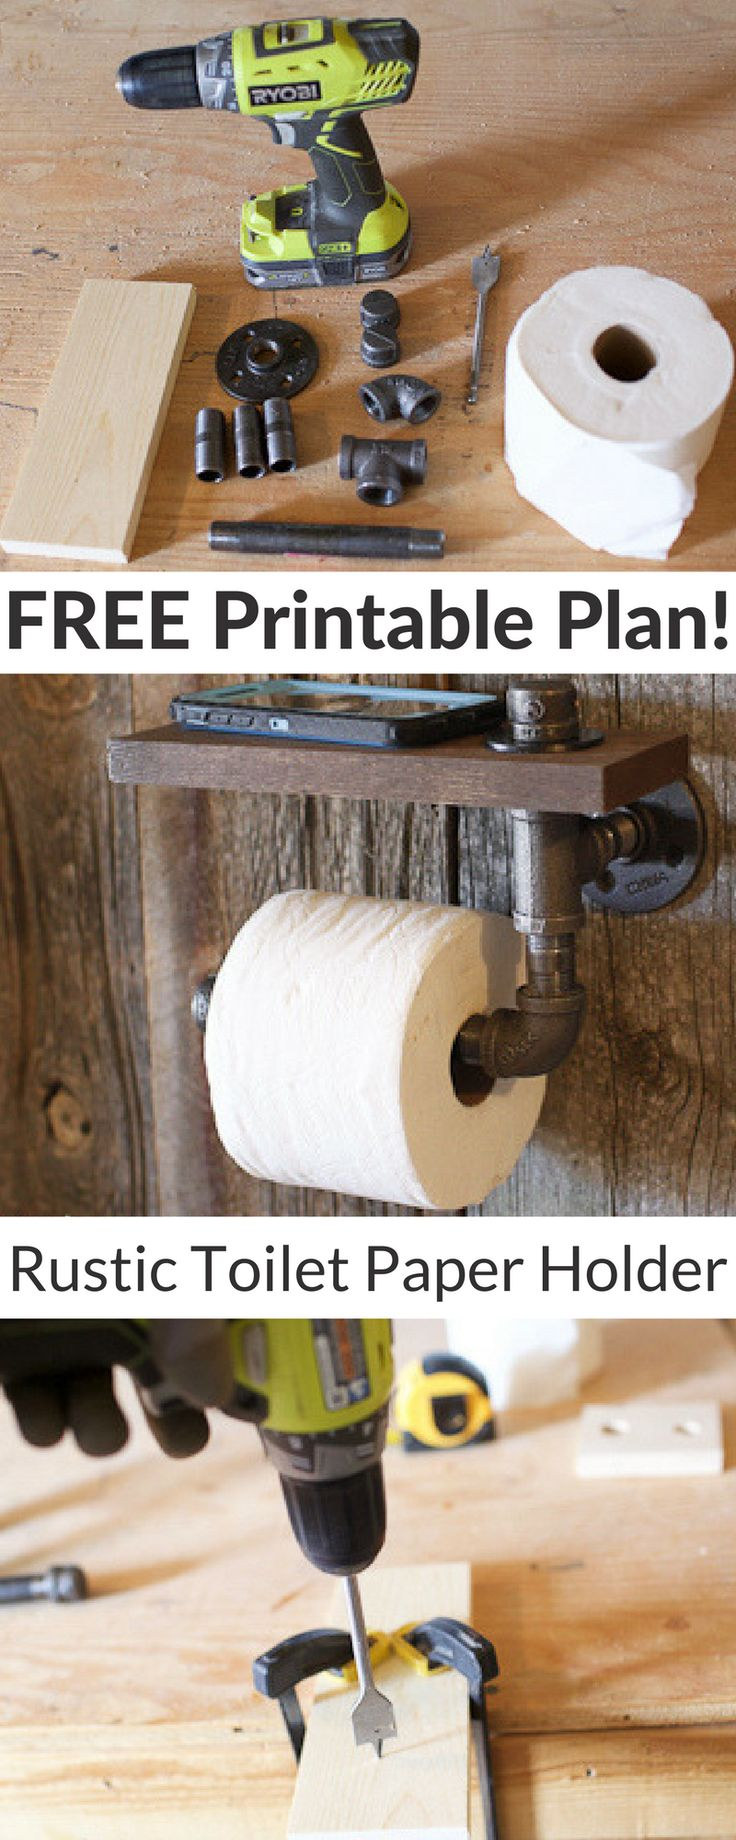 This super simple and essential DIY will look great in your bathroom! It even has a shelf for your cell phone! Download the free plans for this Rustic Toilet Paper Holder on buildsomething.com